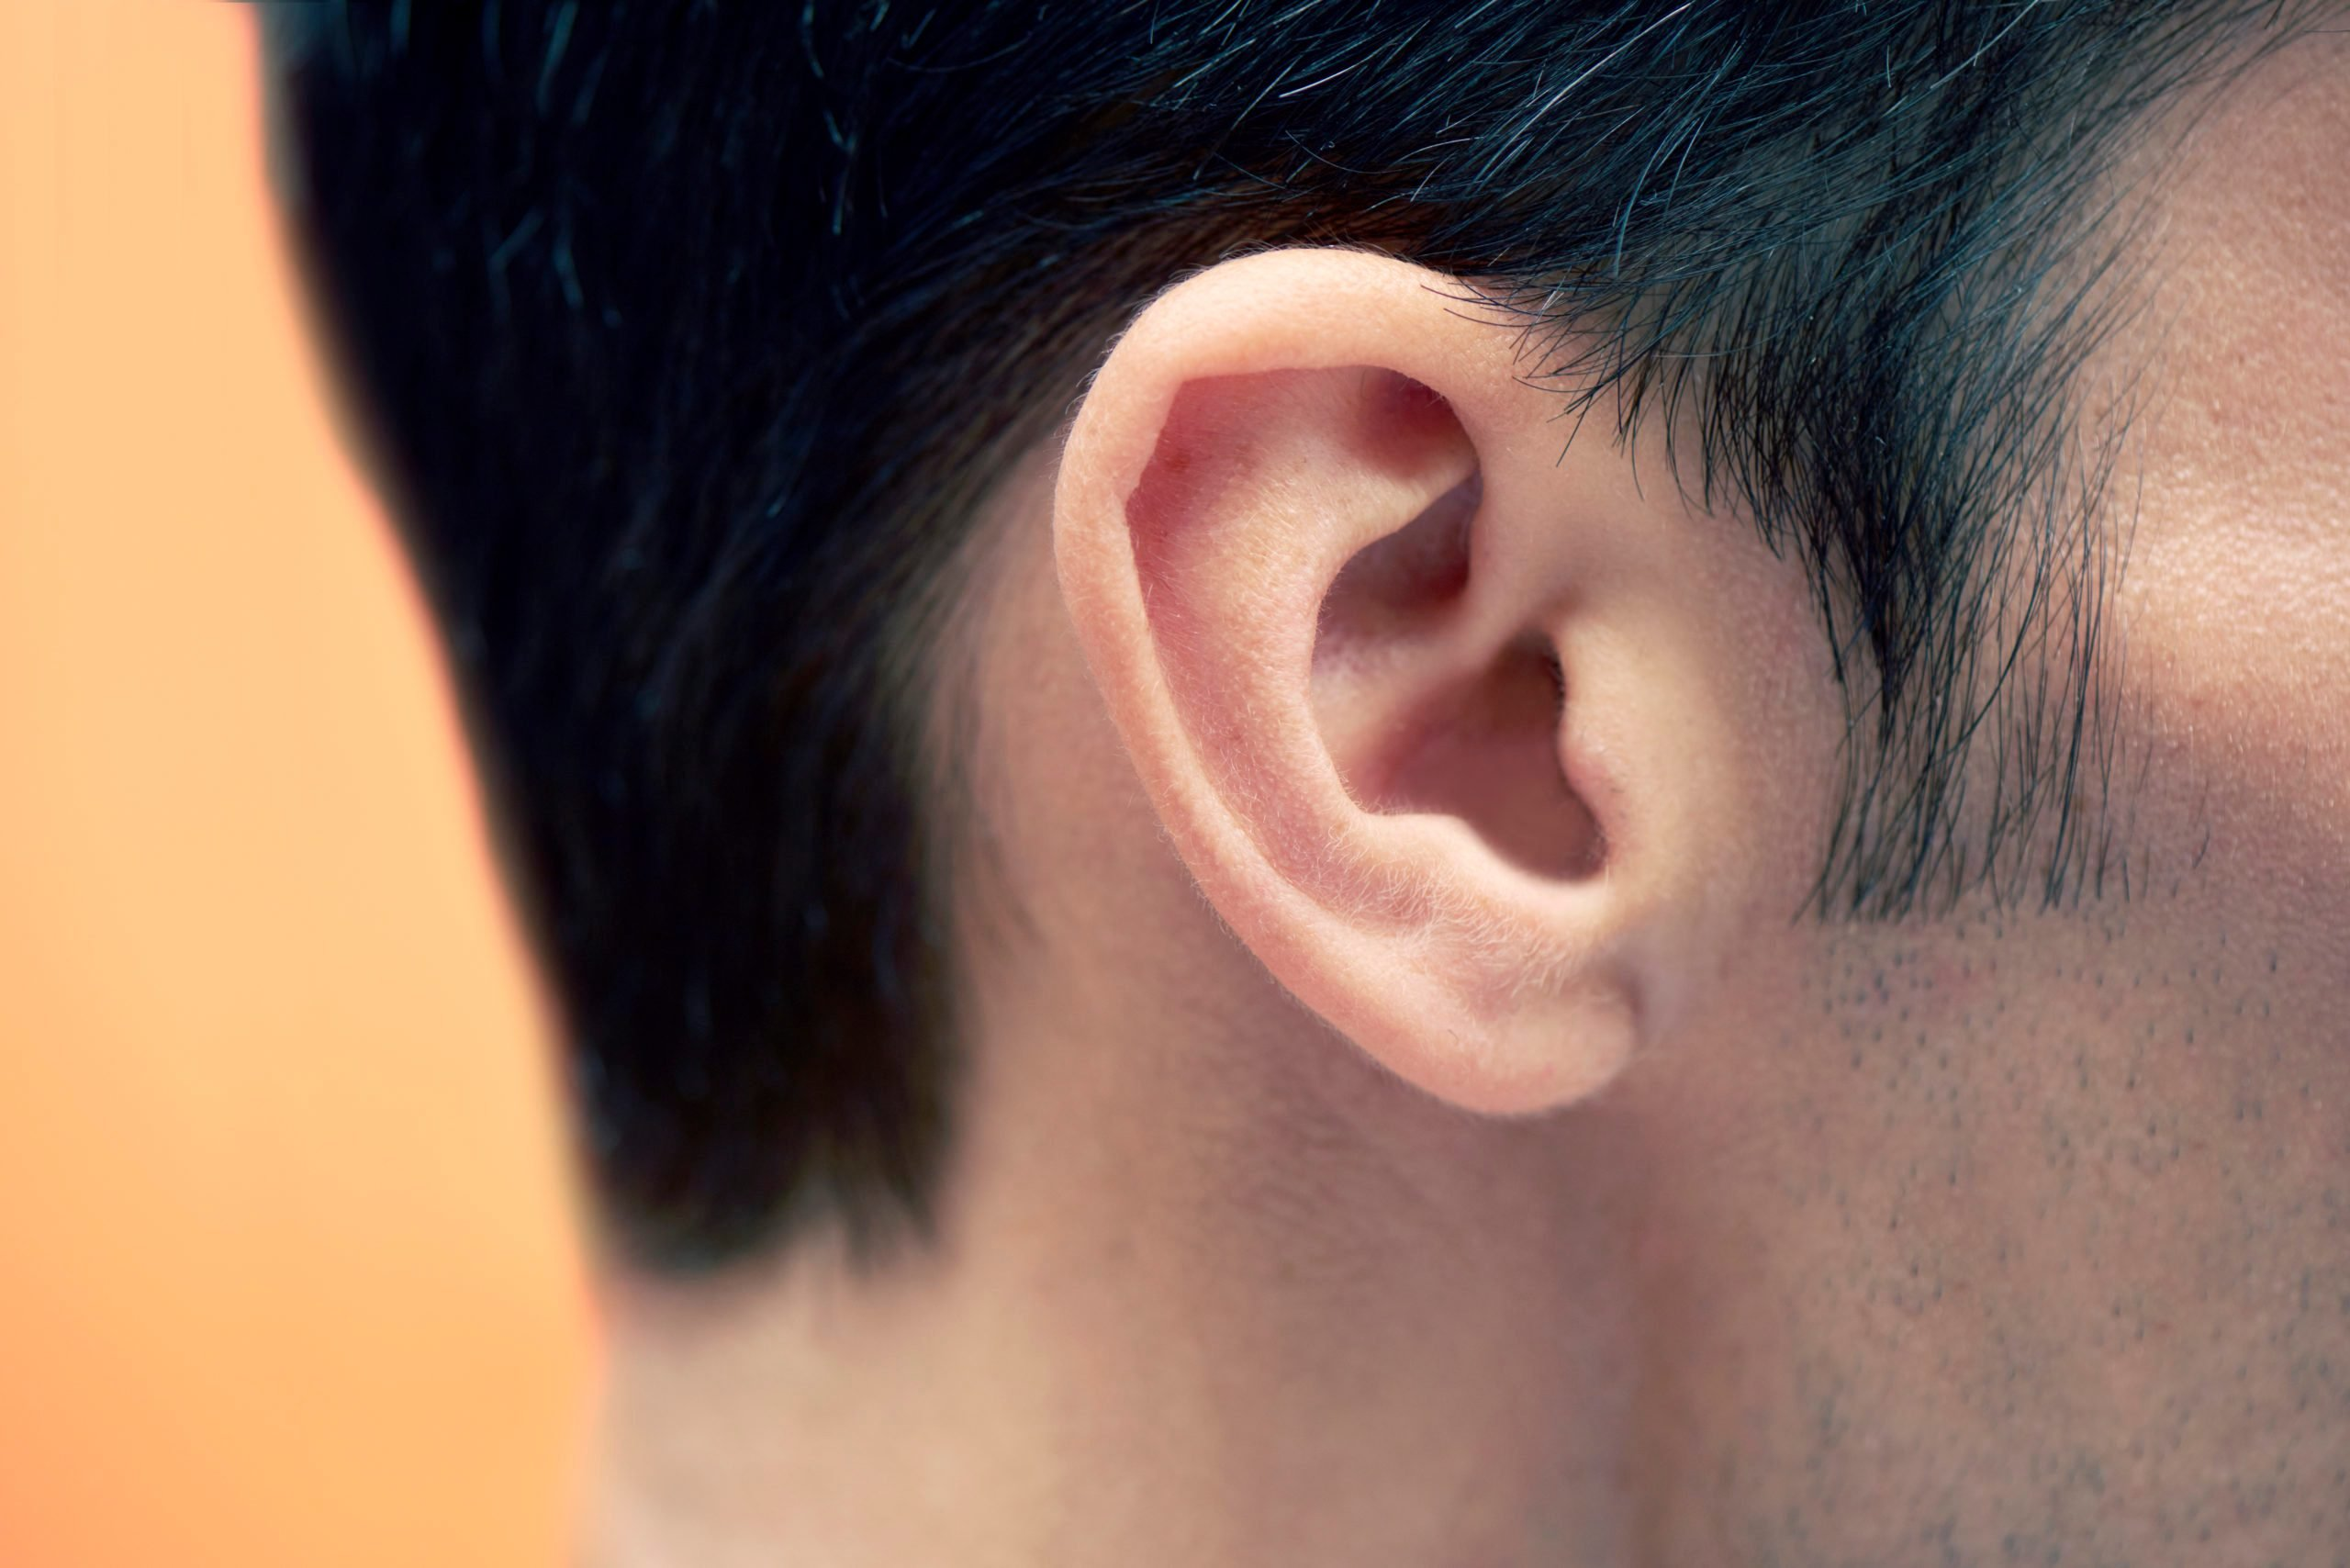 closeup of man's ear